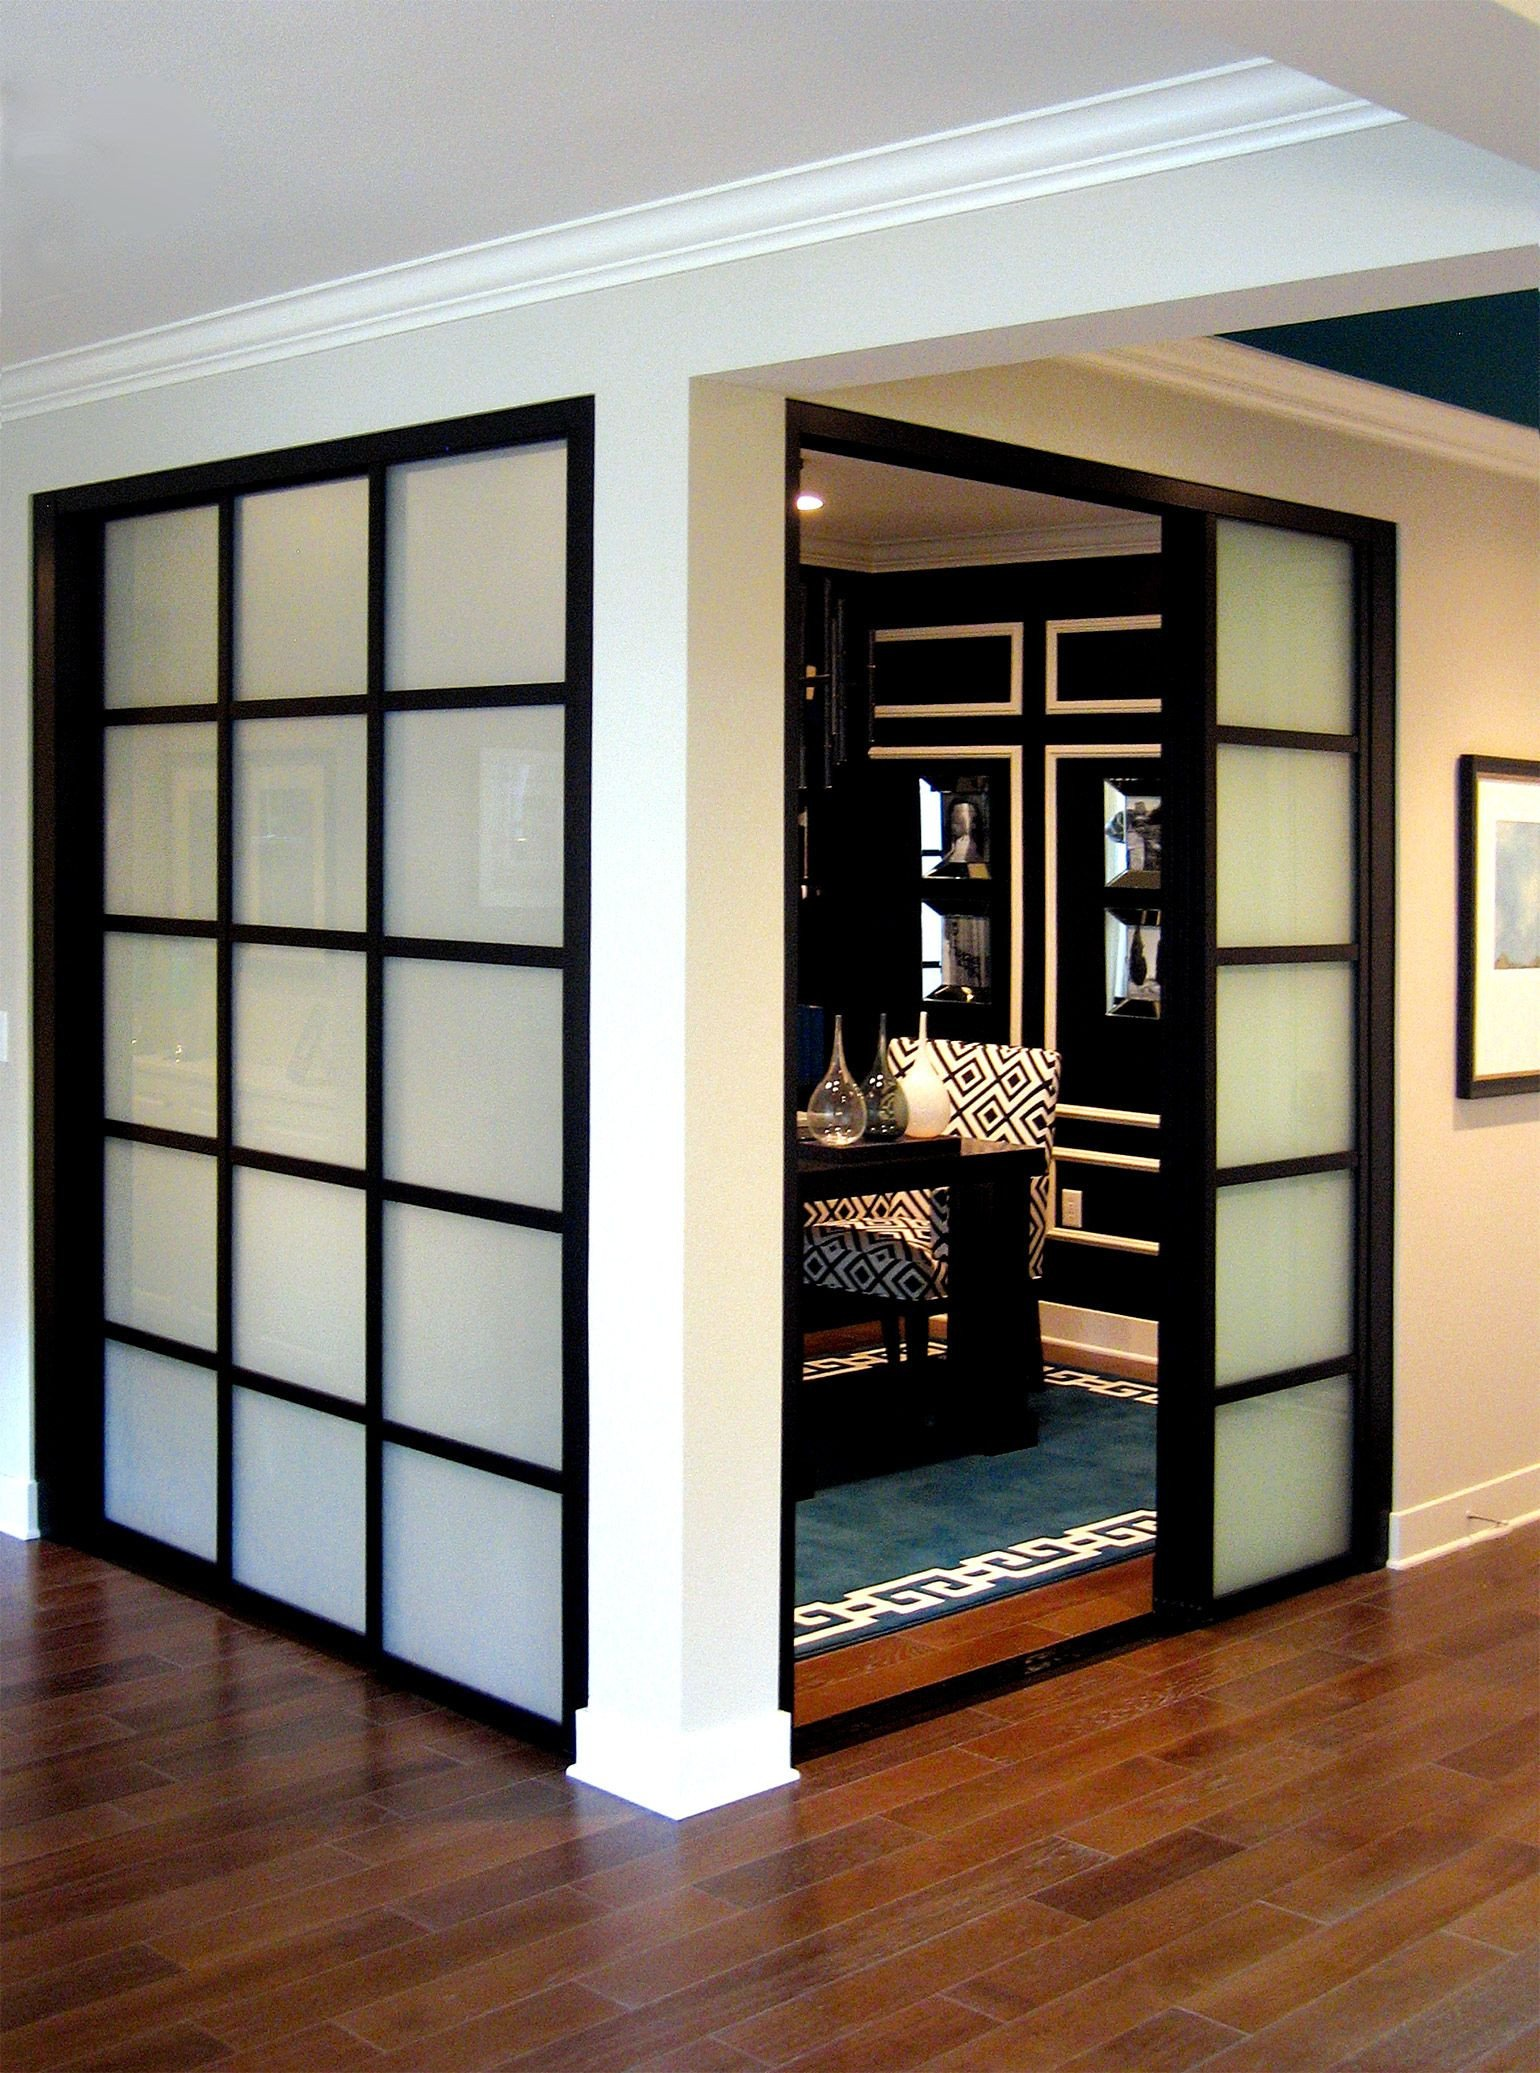 Sliding Doors for Bedroom Unique Wall Slide Doors with Laminated Glass & Black Frame